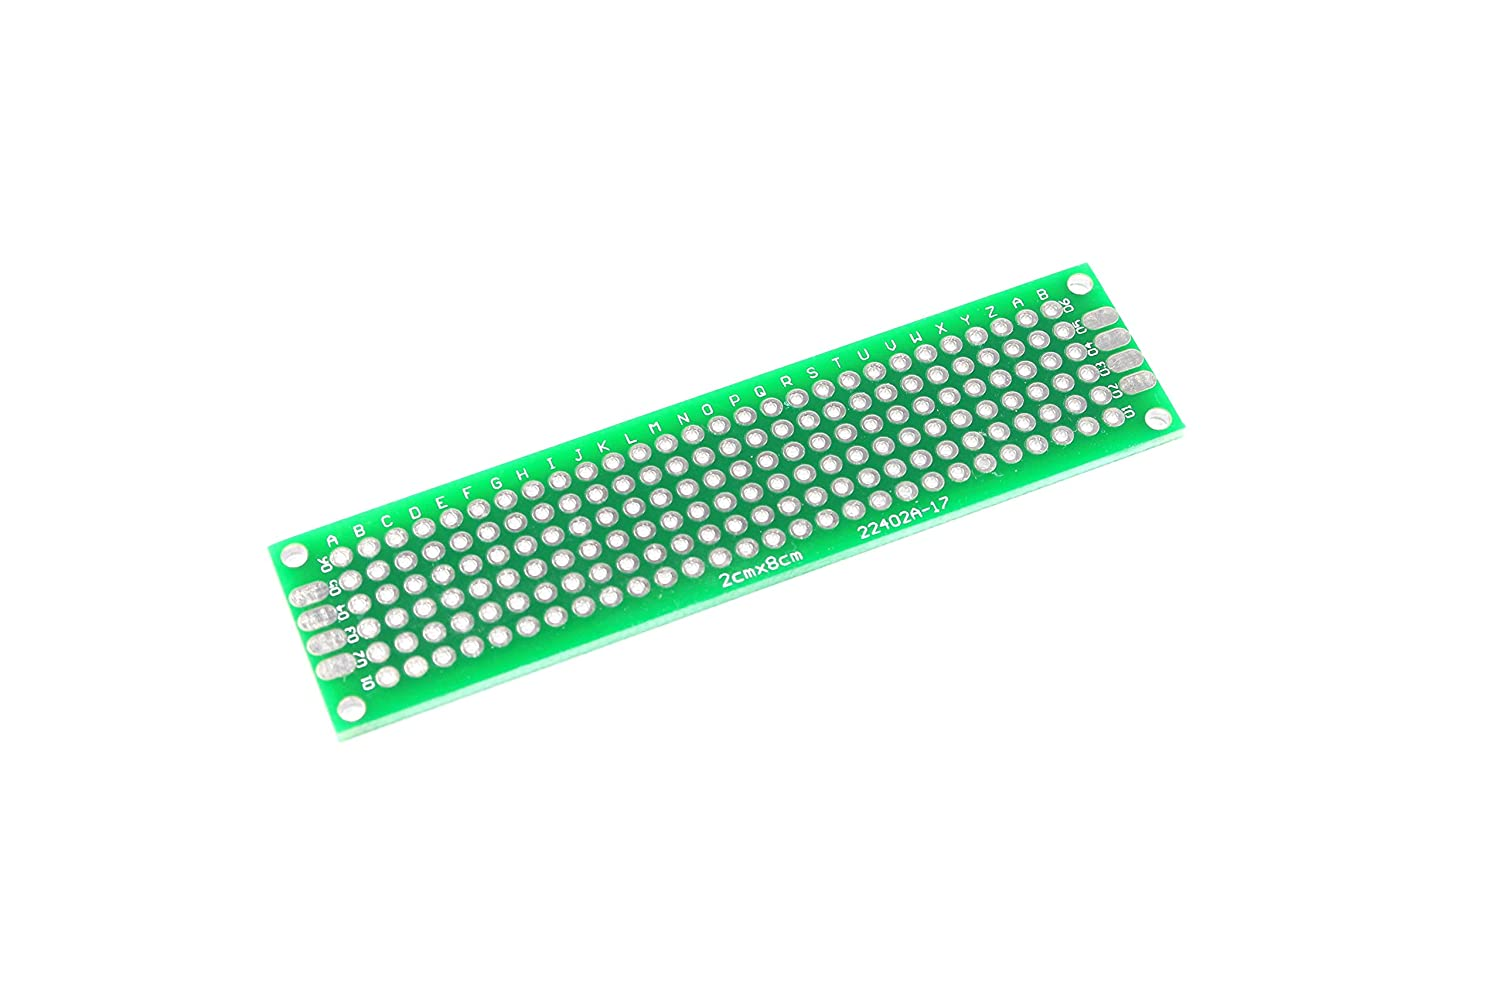 2 x 8cm 168 Point Breadboard Prototyping Vero Copper Arduino Unbranded/Generic GCAA100143